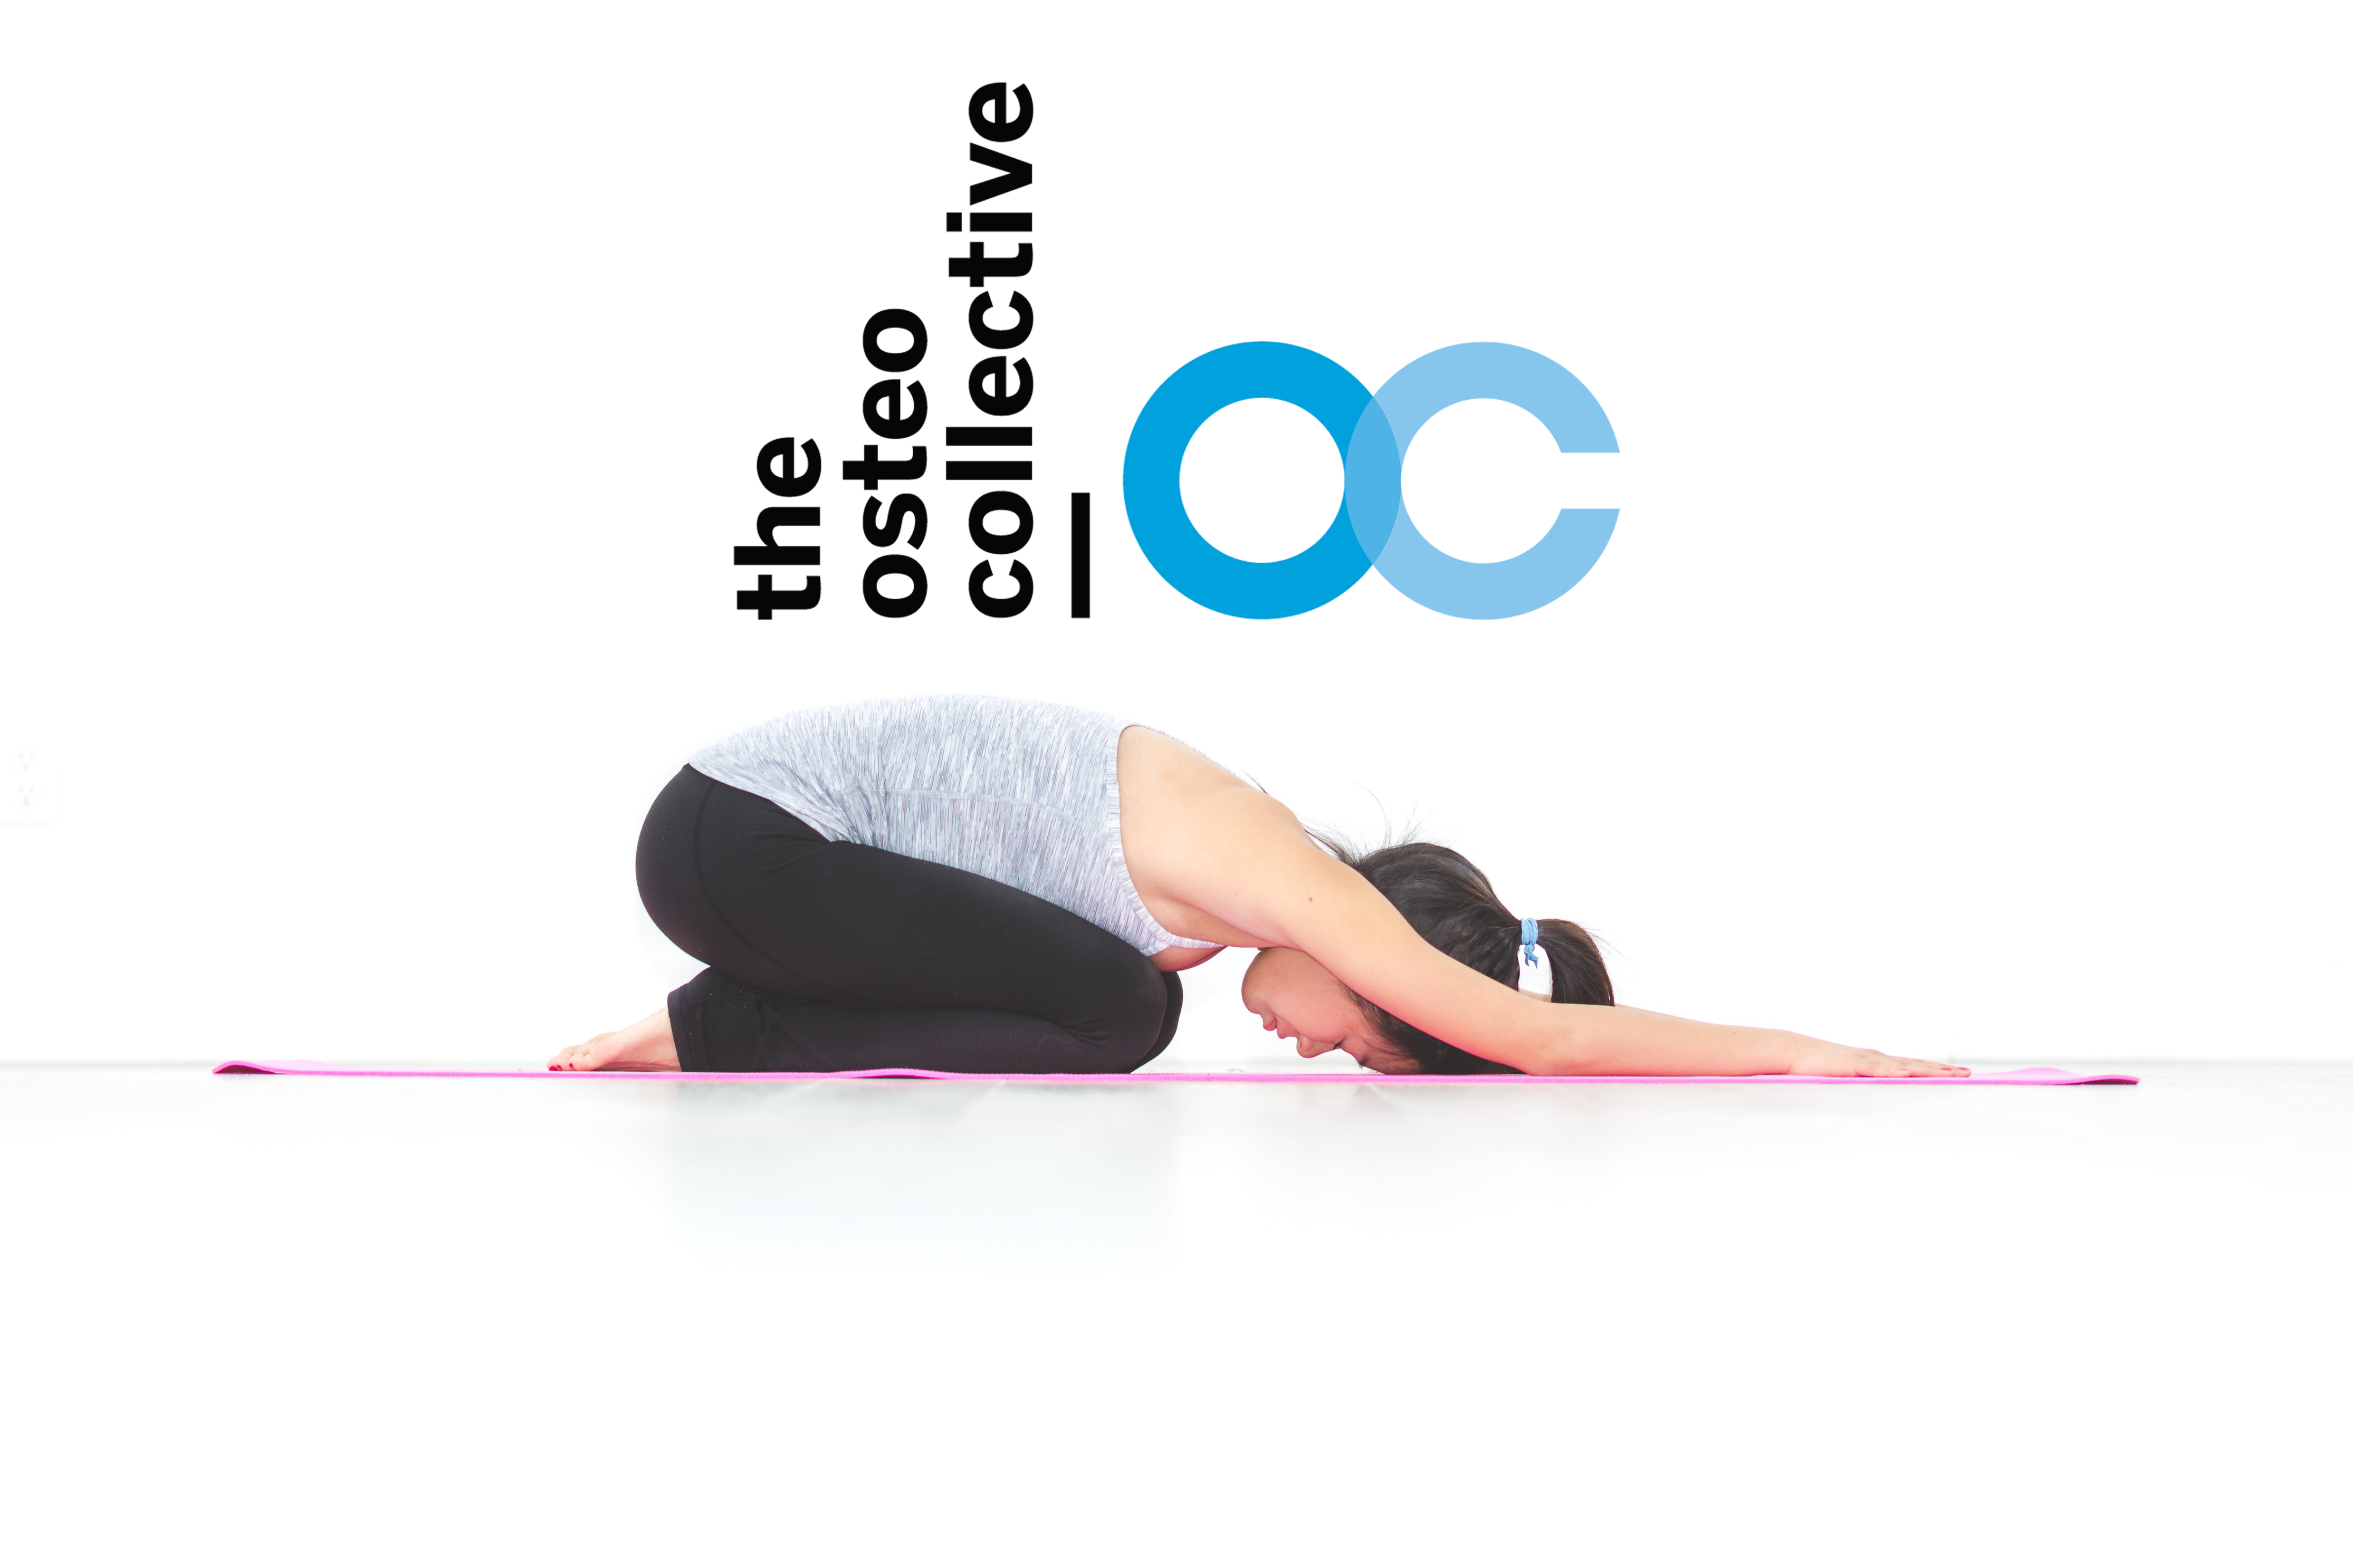 Picture of lady performing a childs pose on a pink yoga mat with the osteo collective logo placed above.